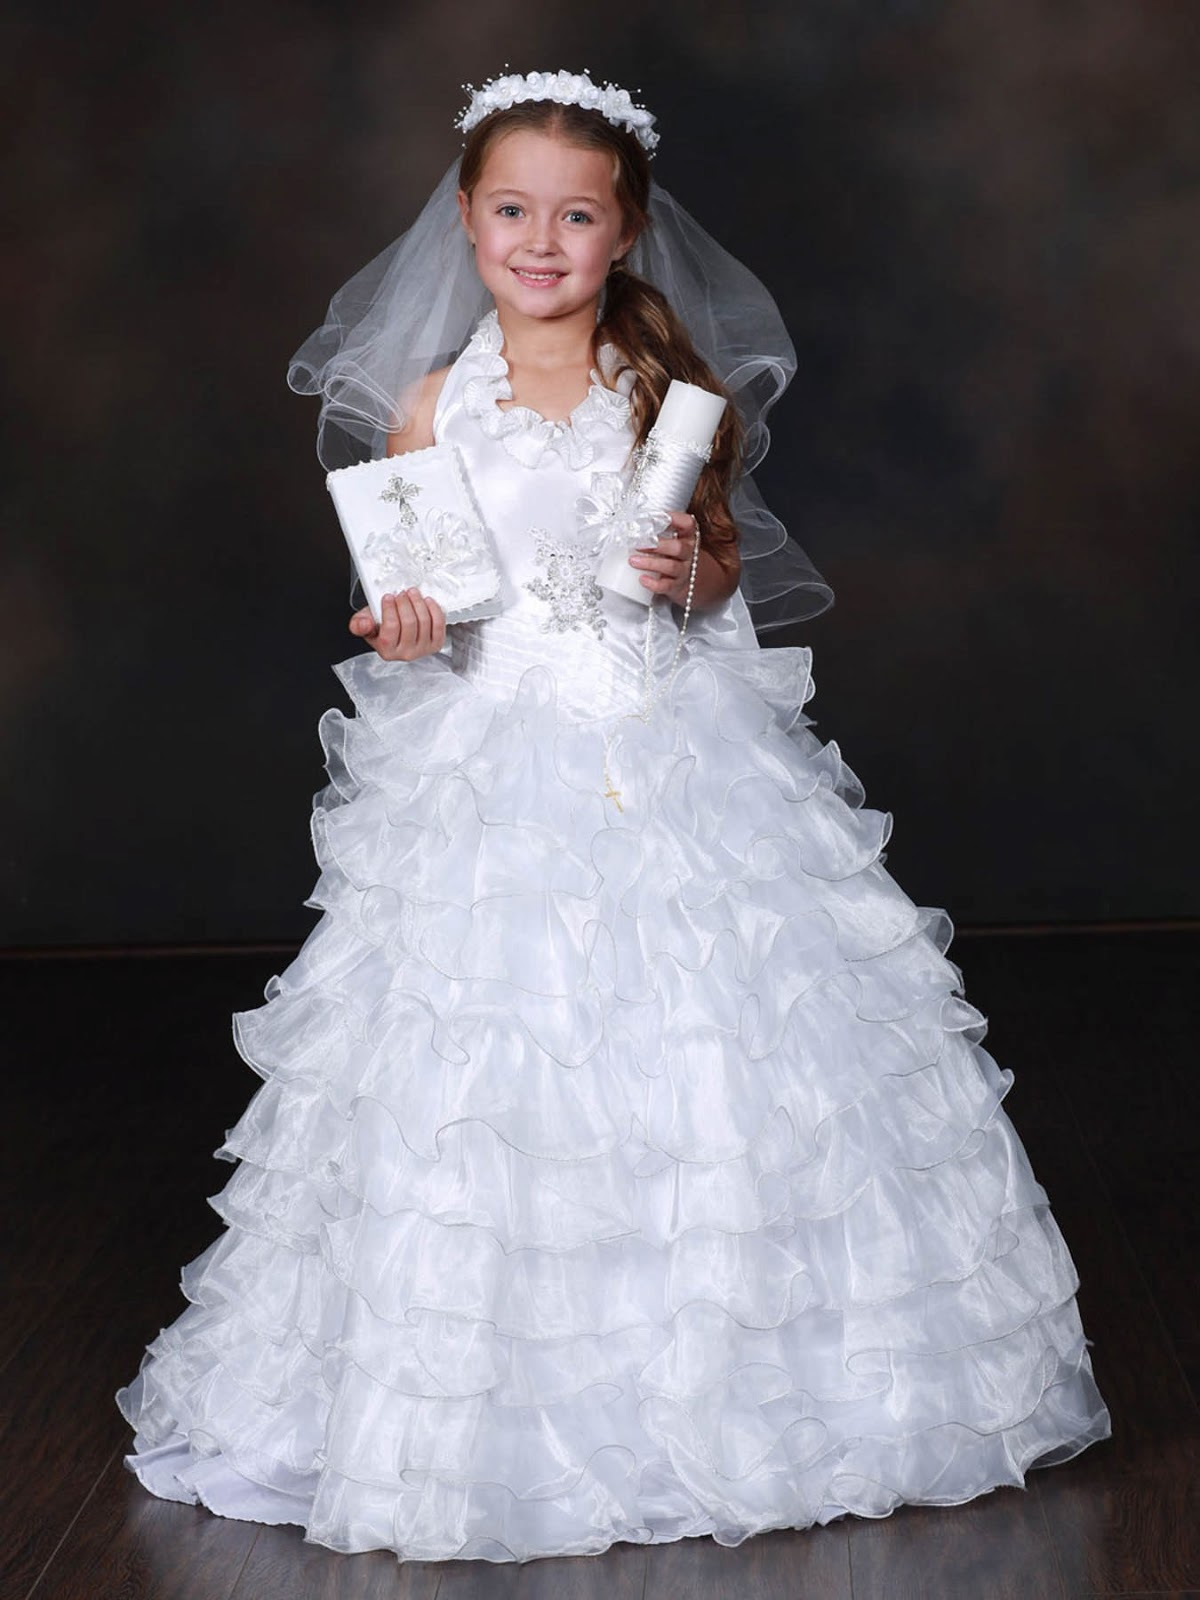 Over The Years I Have Seen Dresses For Little Girls Who Are Celebrating Their First Communion In Catholic Church And They Always Look Like Wedding